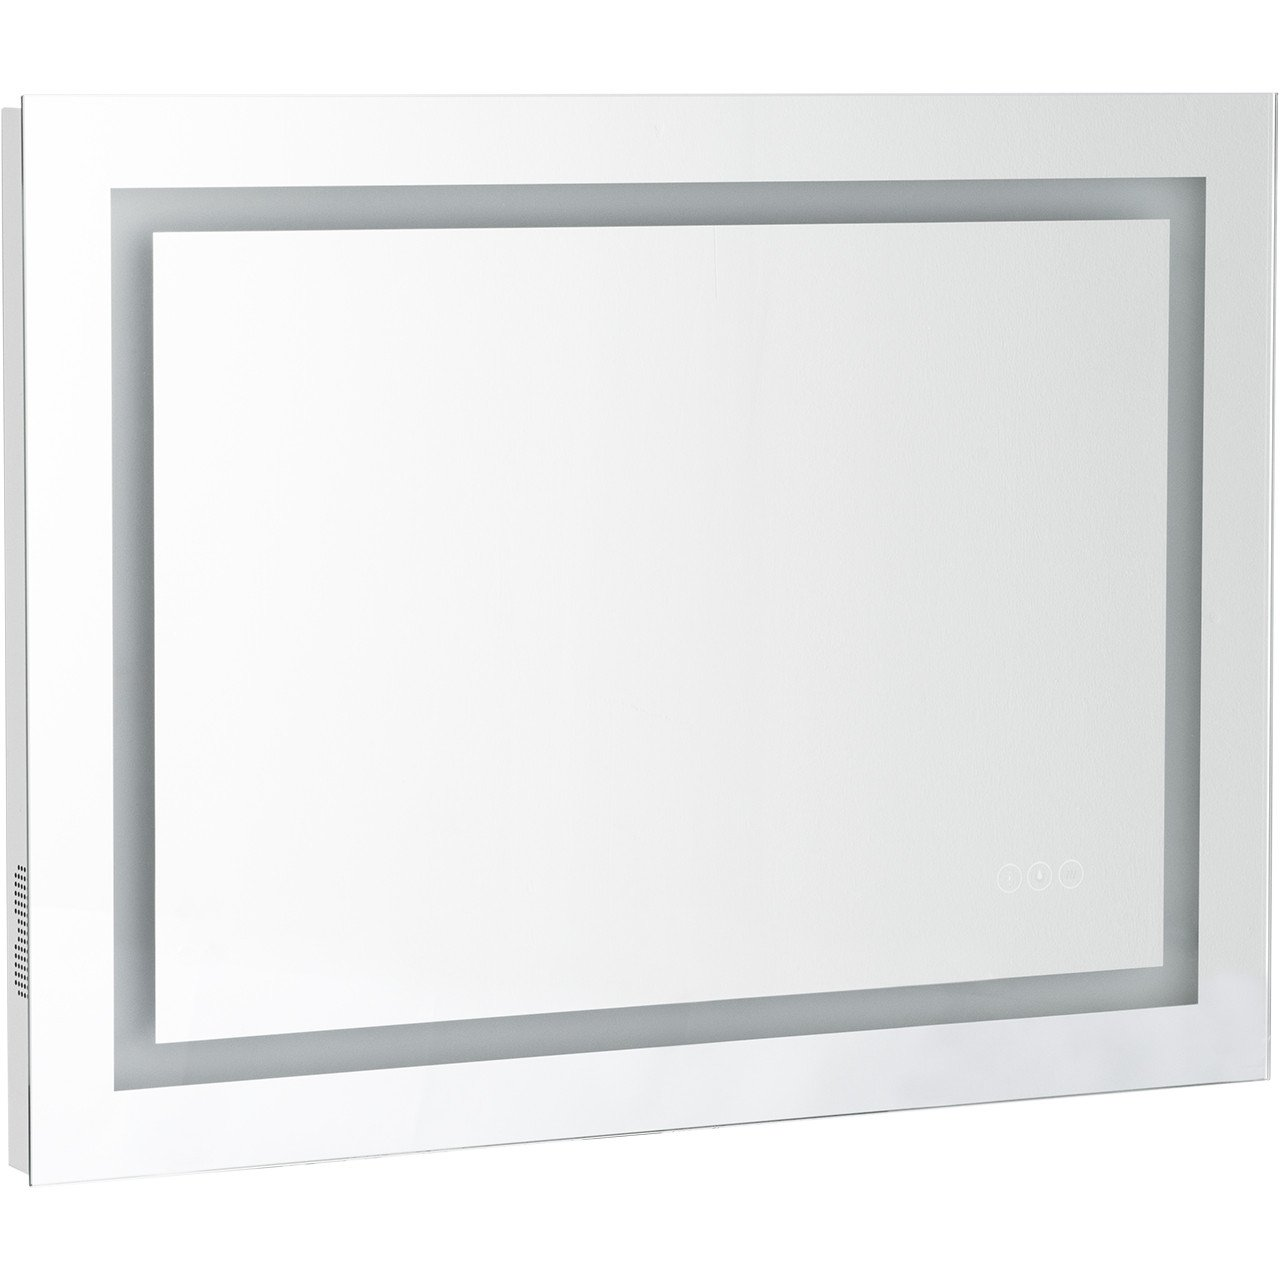 Hera Bluetooth Mirror 800 x 600